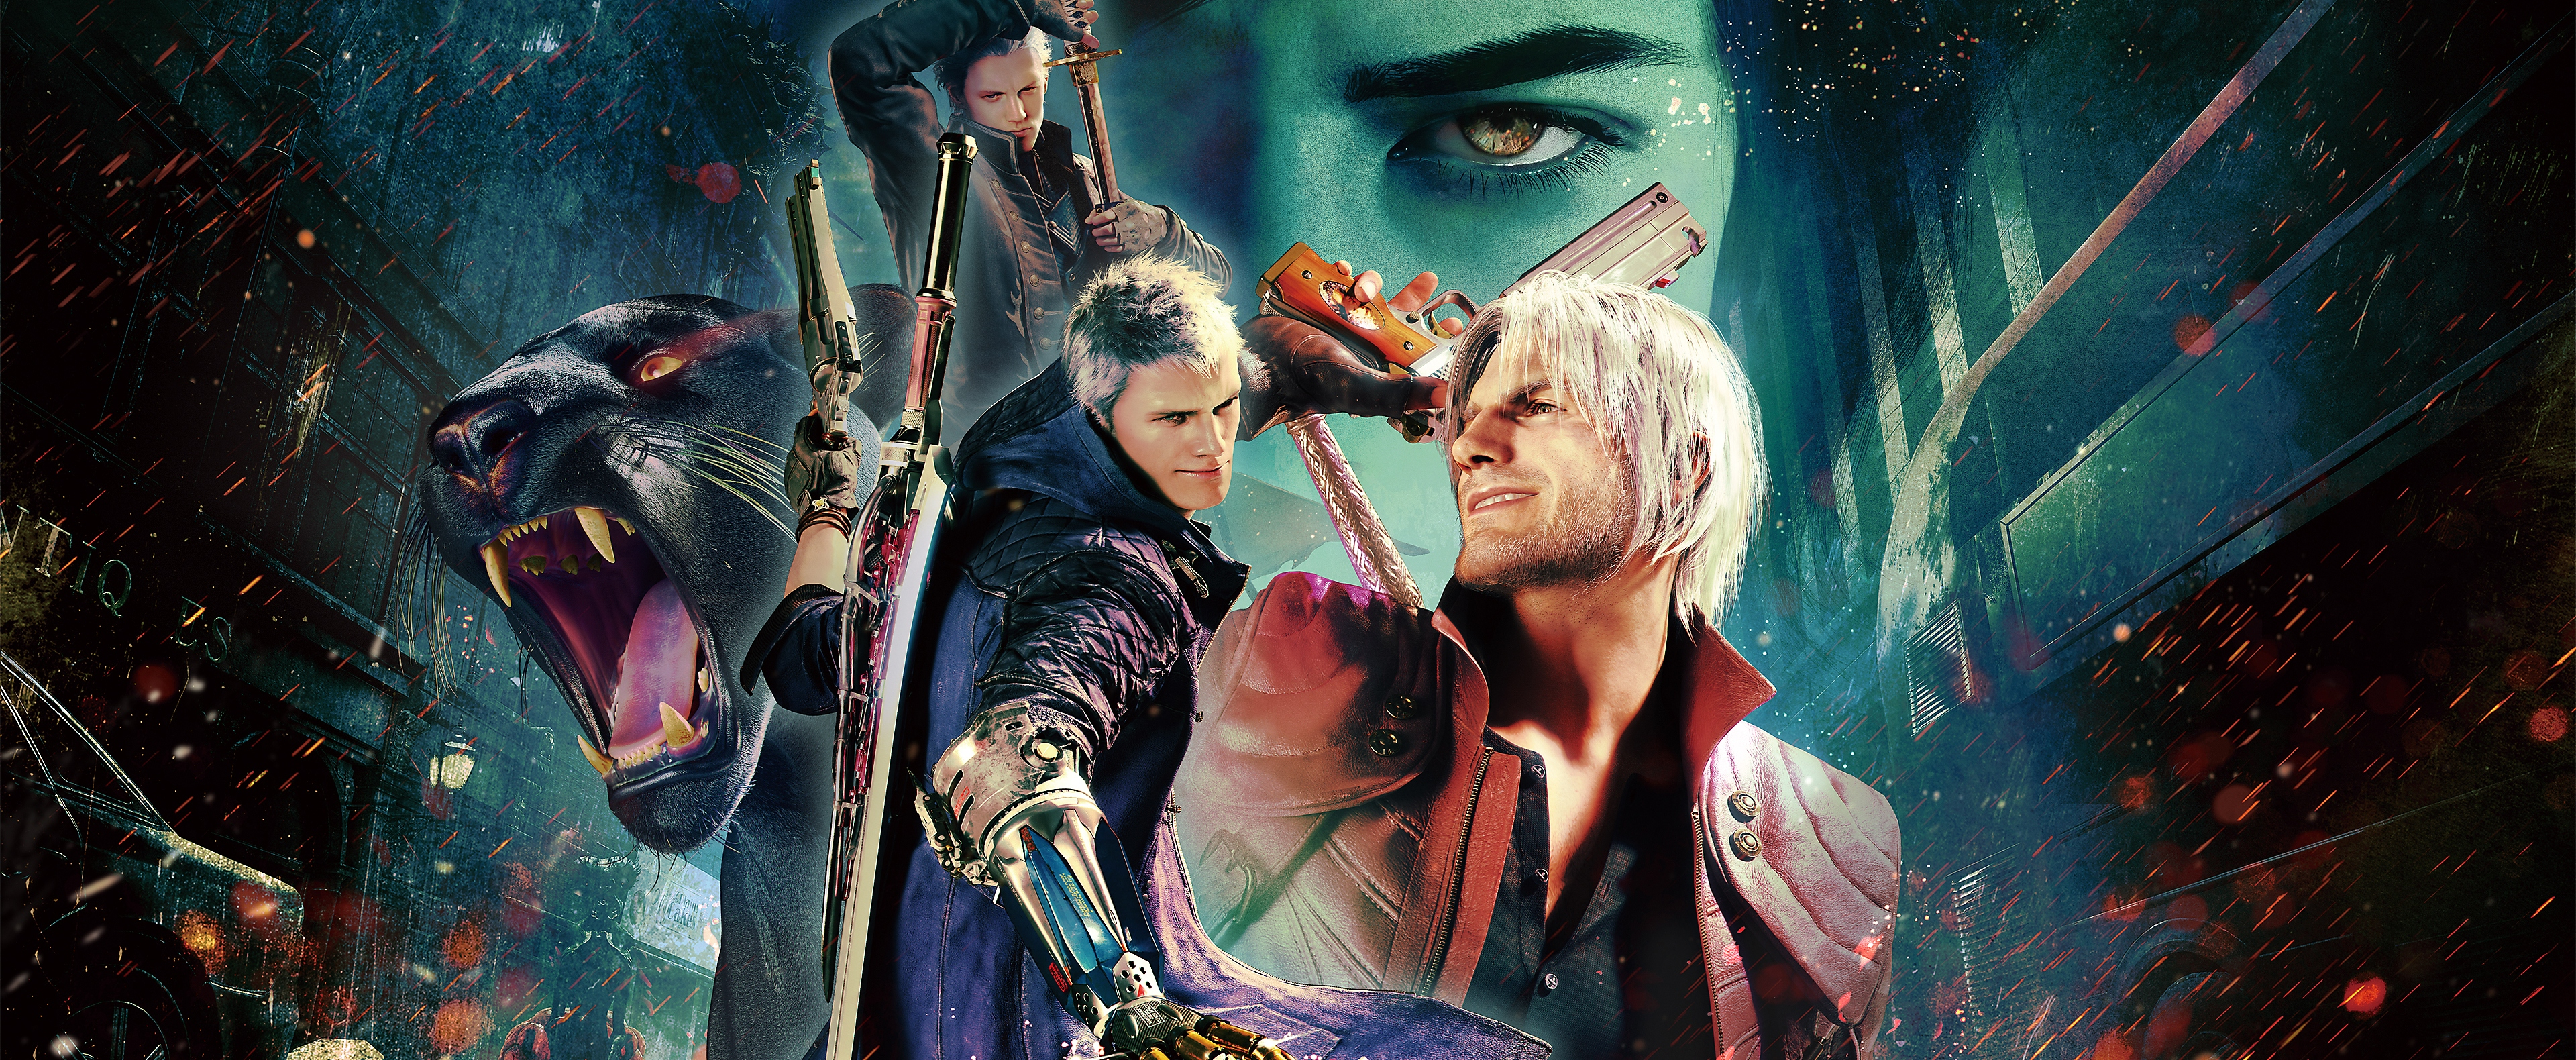 Devil May Cry 5: Special Edition - плакат